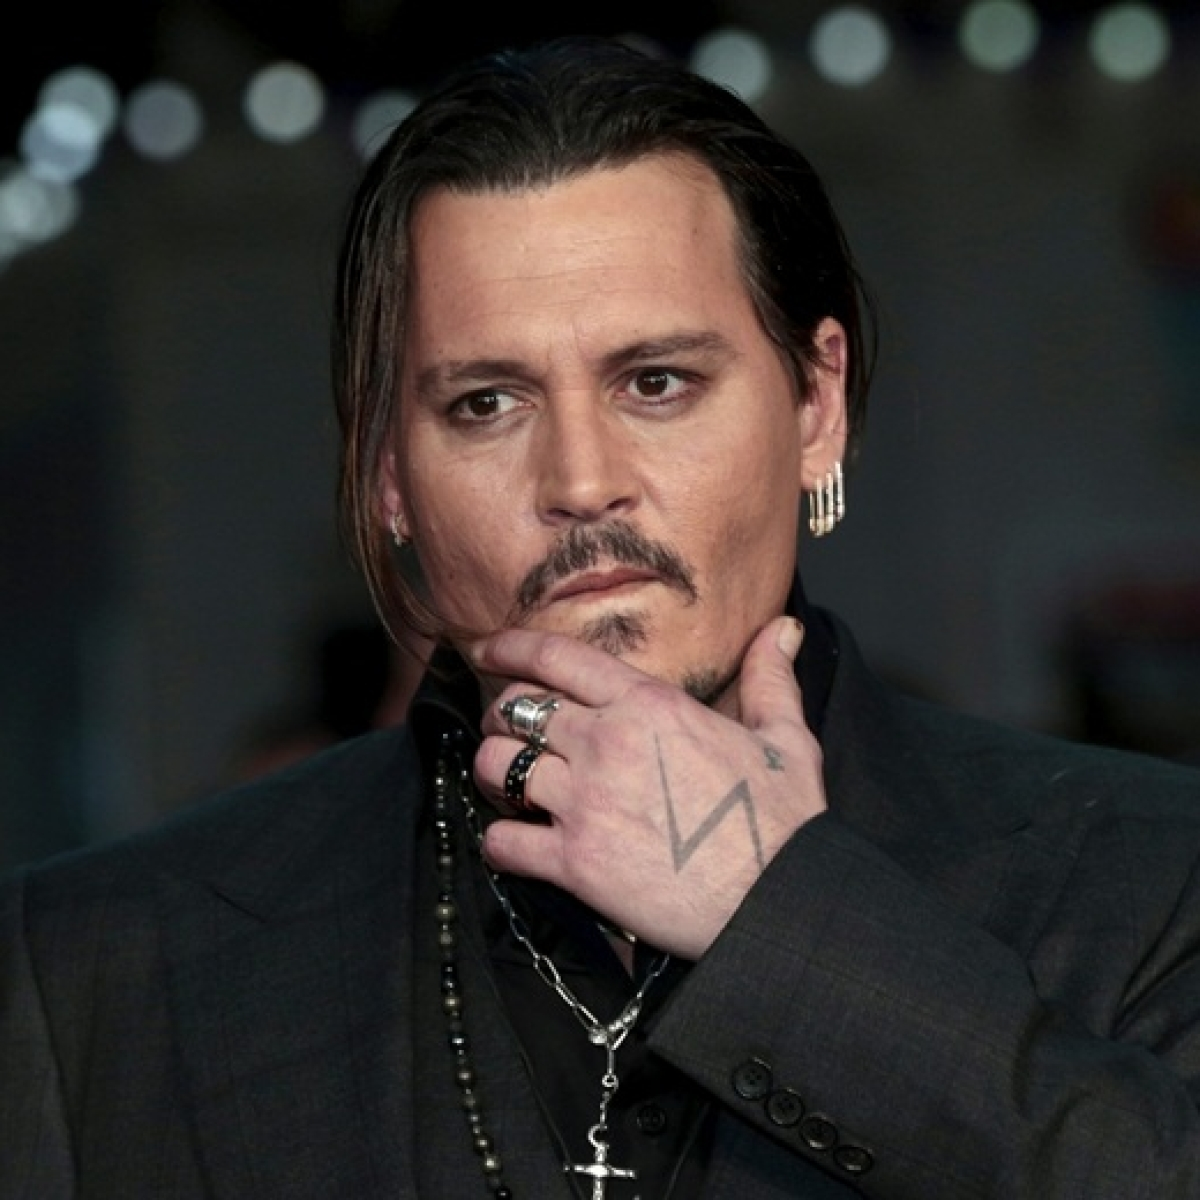 Johnny Depp to get full salary despite ouster from 'Fantastic Beasts' franchise